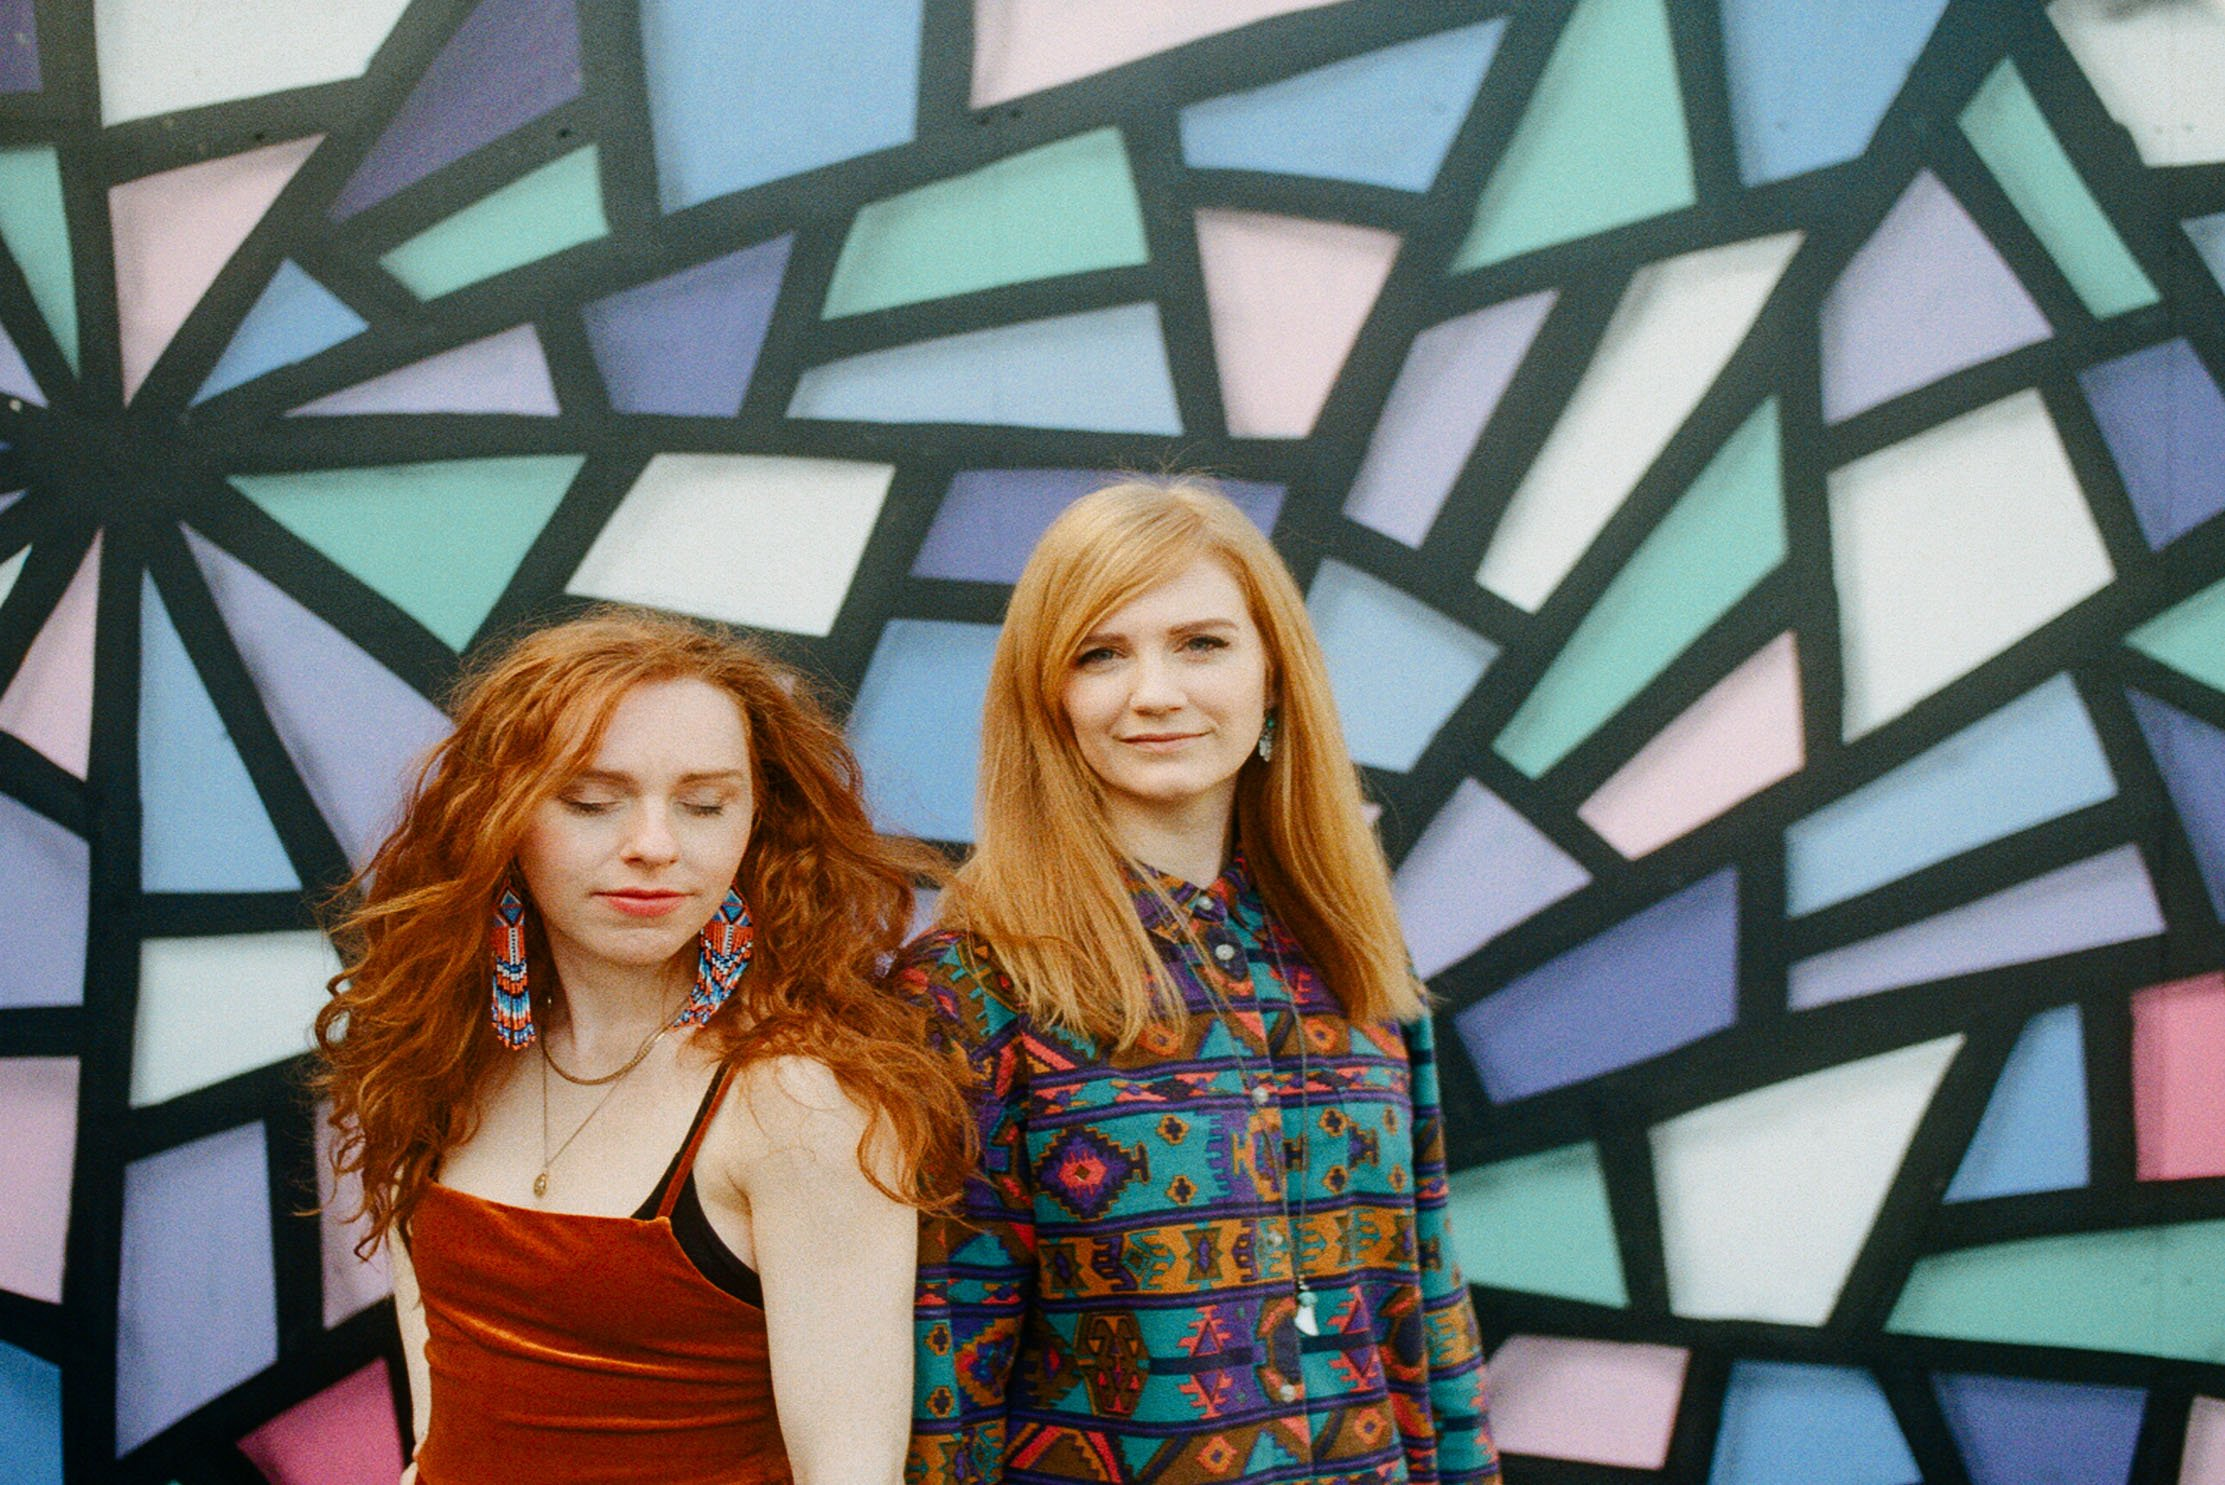 After releasing their new single, The River, on Weds 2 Oct, Worry Dolls head to Lewes' Con Club on Thurs 24 Oct 2019